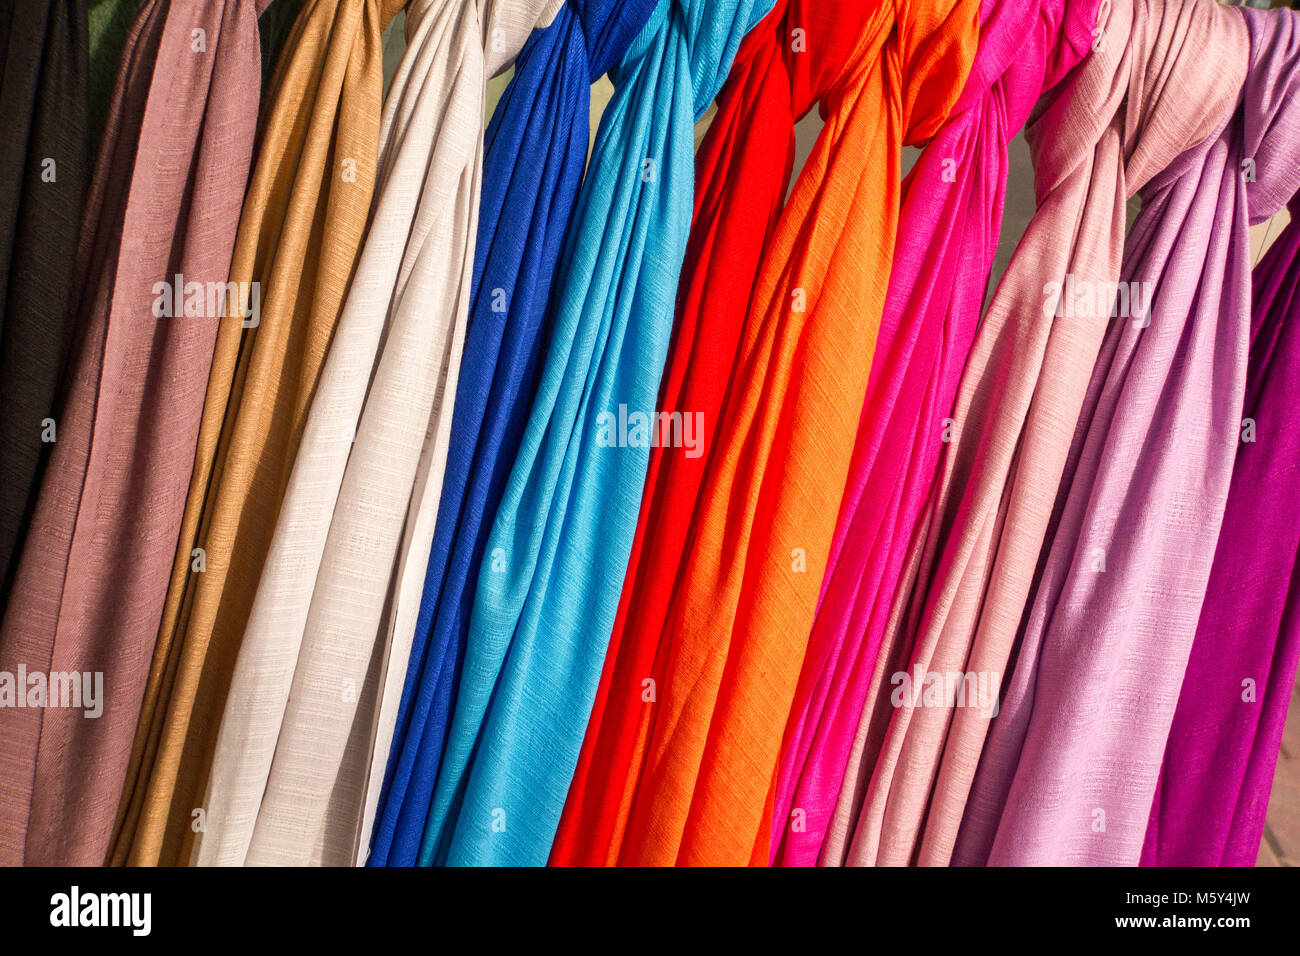 Row of colourful silk scarfs hanging at a market .Colorful fabric background, pink gold and blue color silk fabric - Stock Image